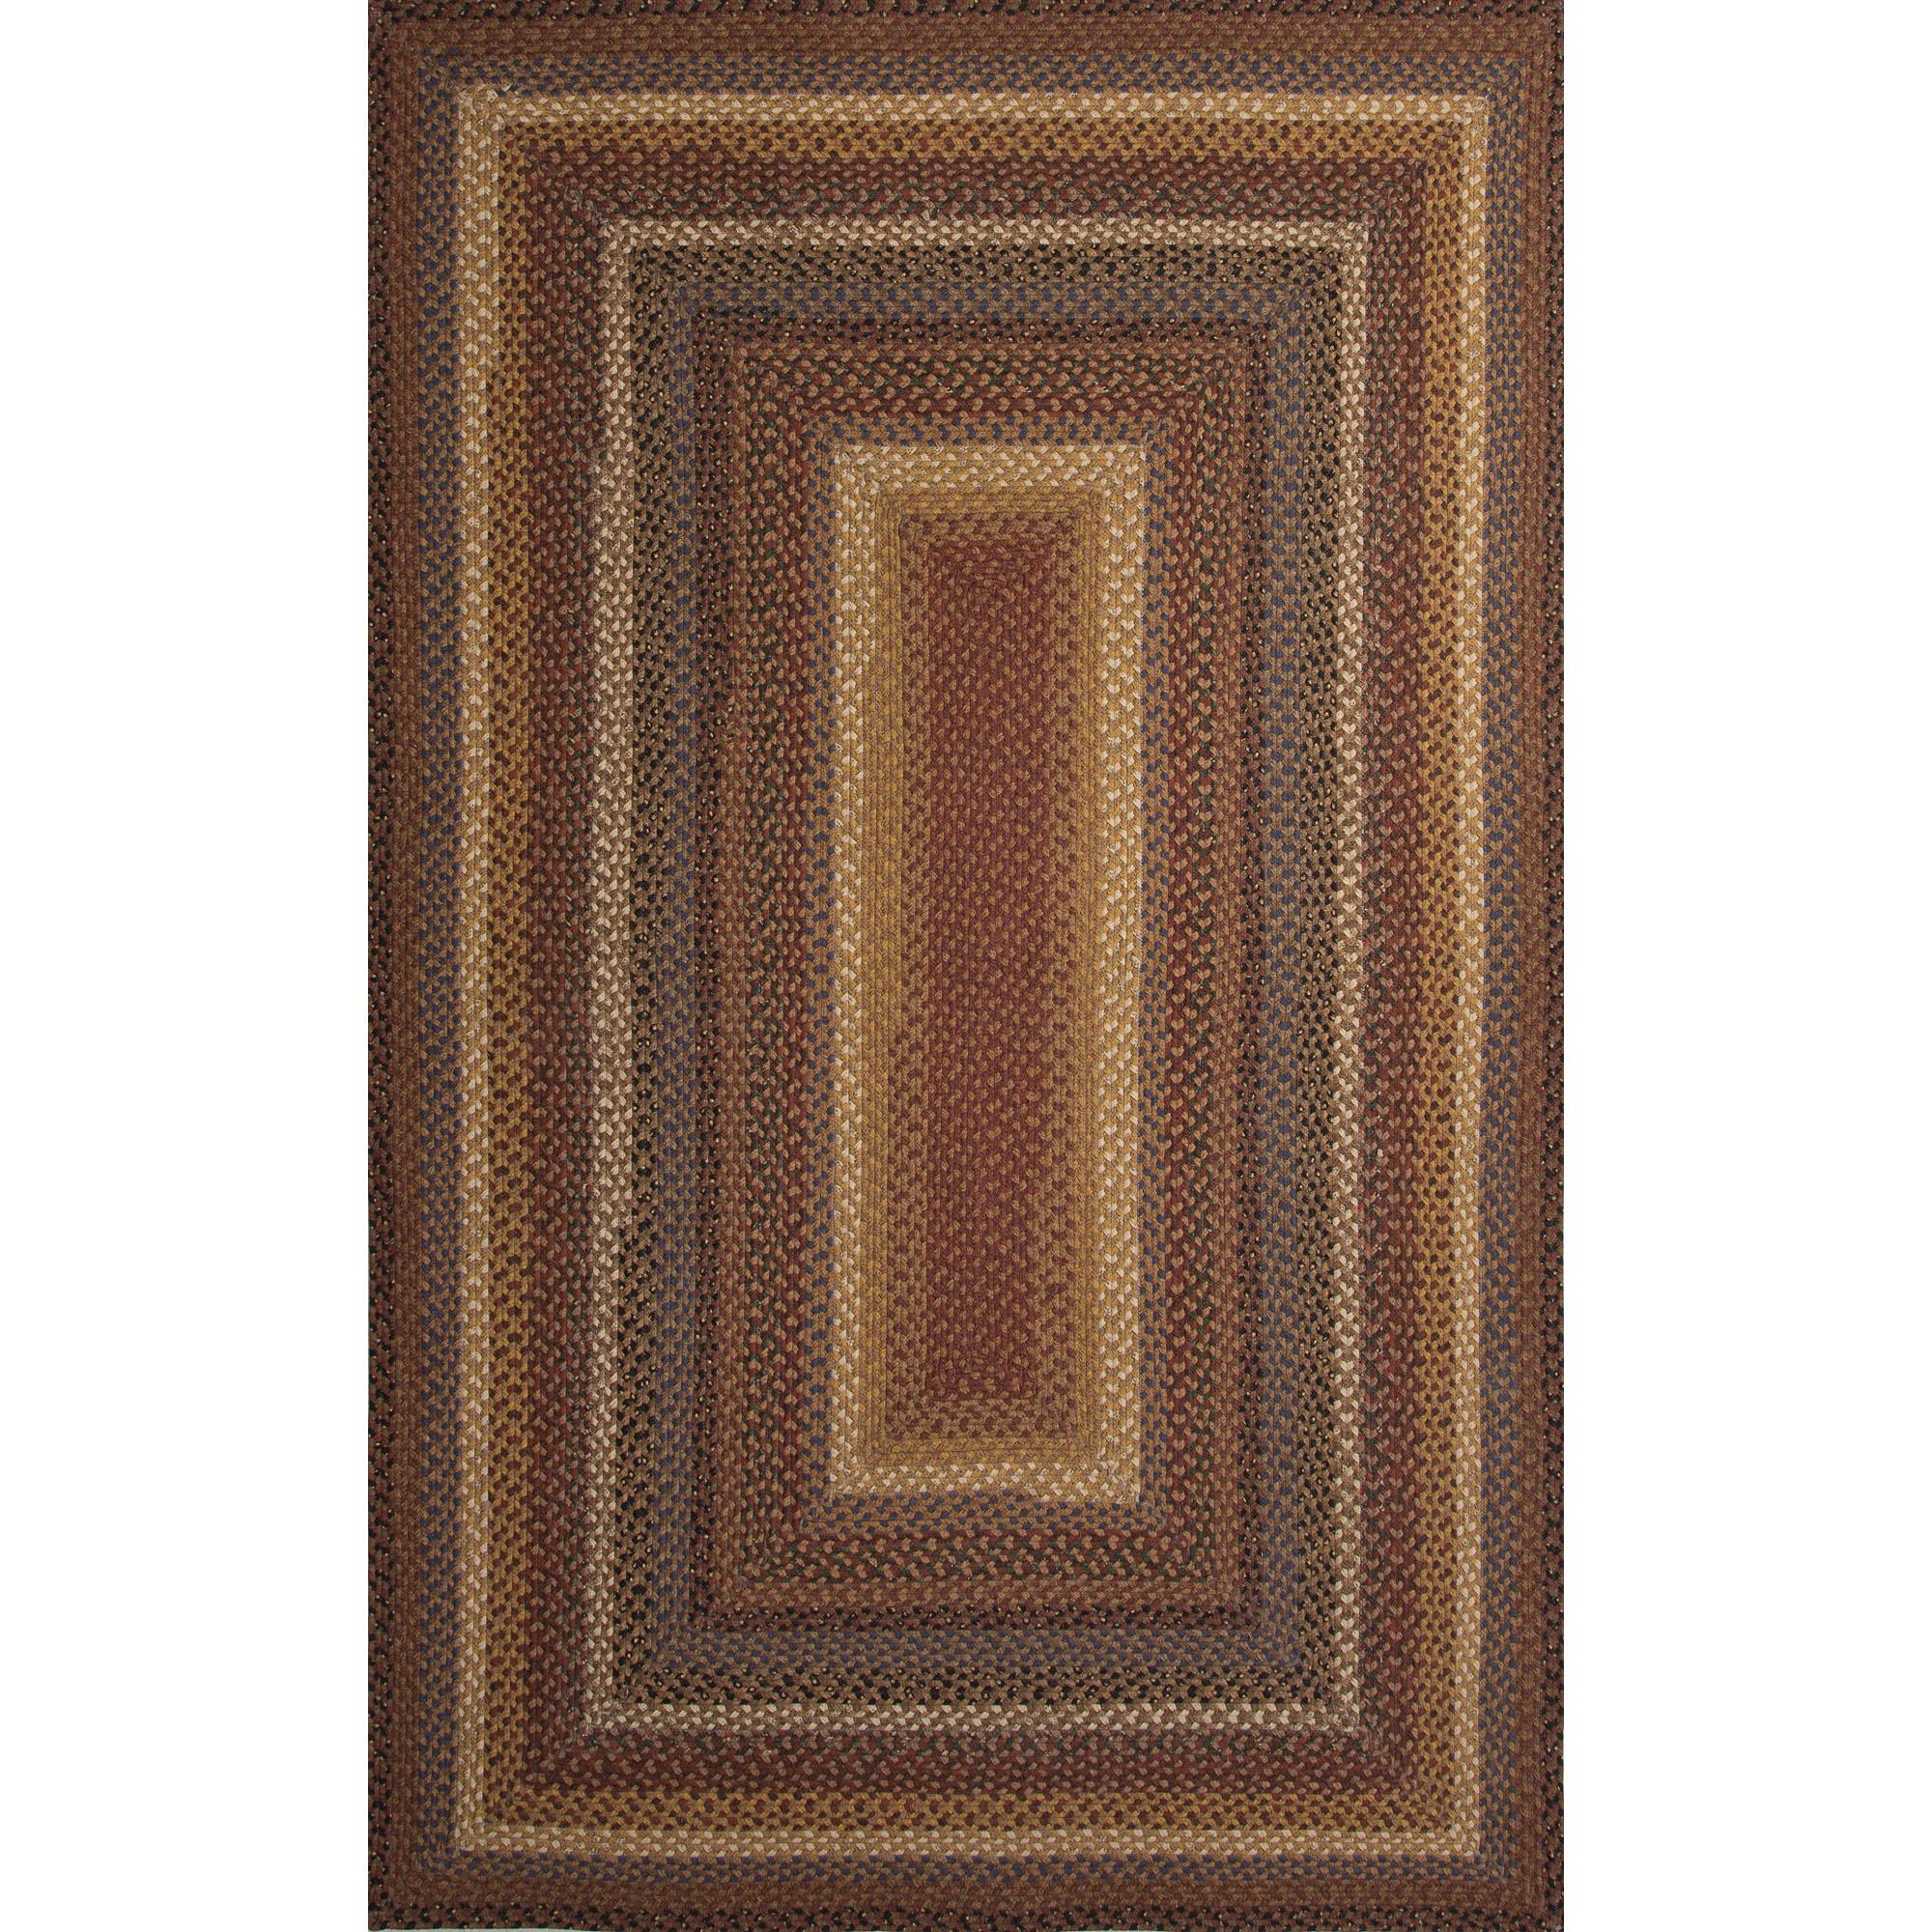 JAIPUR Rugs Cotton Braided Rugs 5 x 8 Rug - Item Number: RUG119488